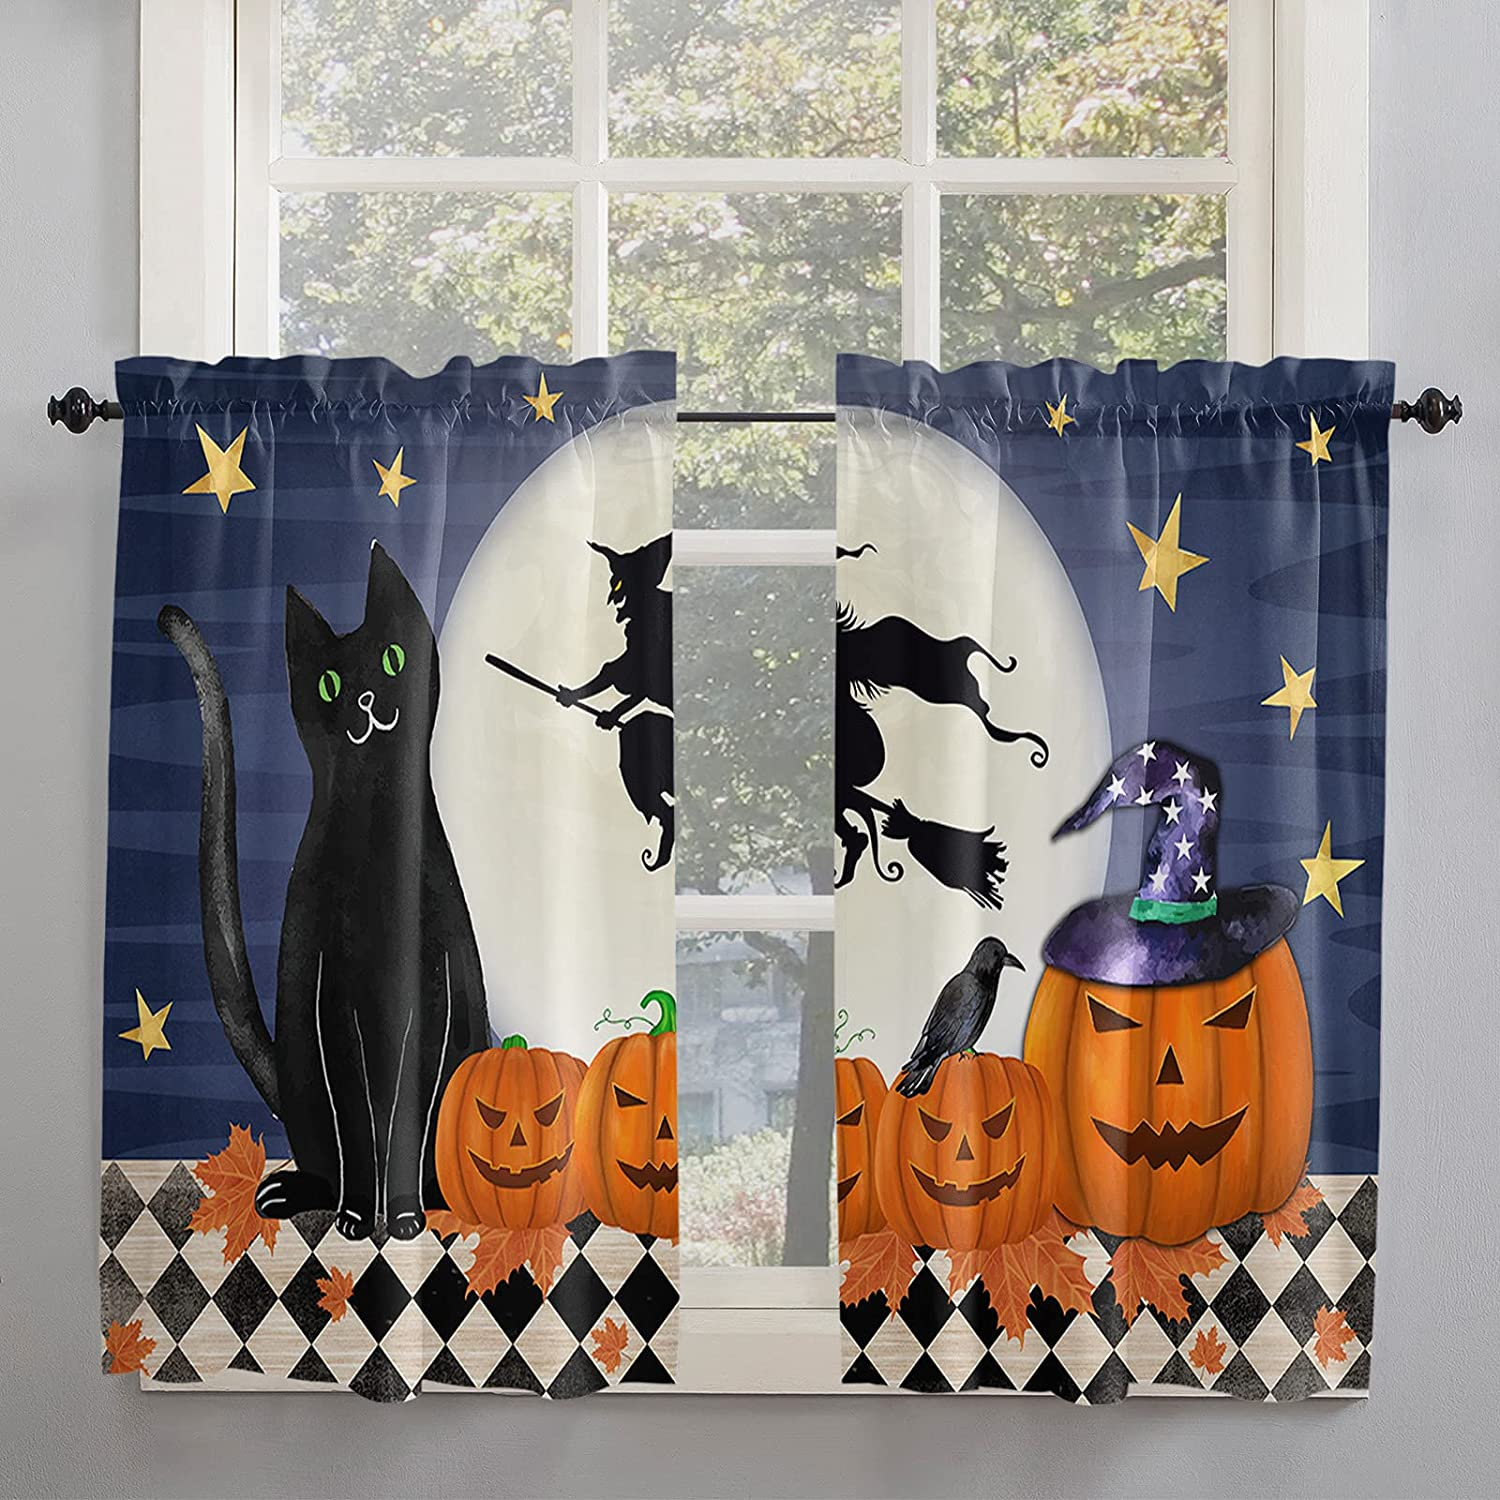 Black Cat Clearance SALE! Limited time! Same day shipping Full Moon Buffalo Kitchen 54 Curtains Inch Length for